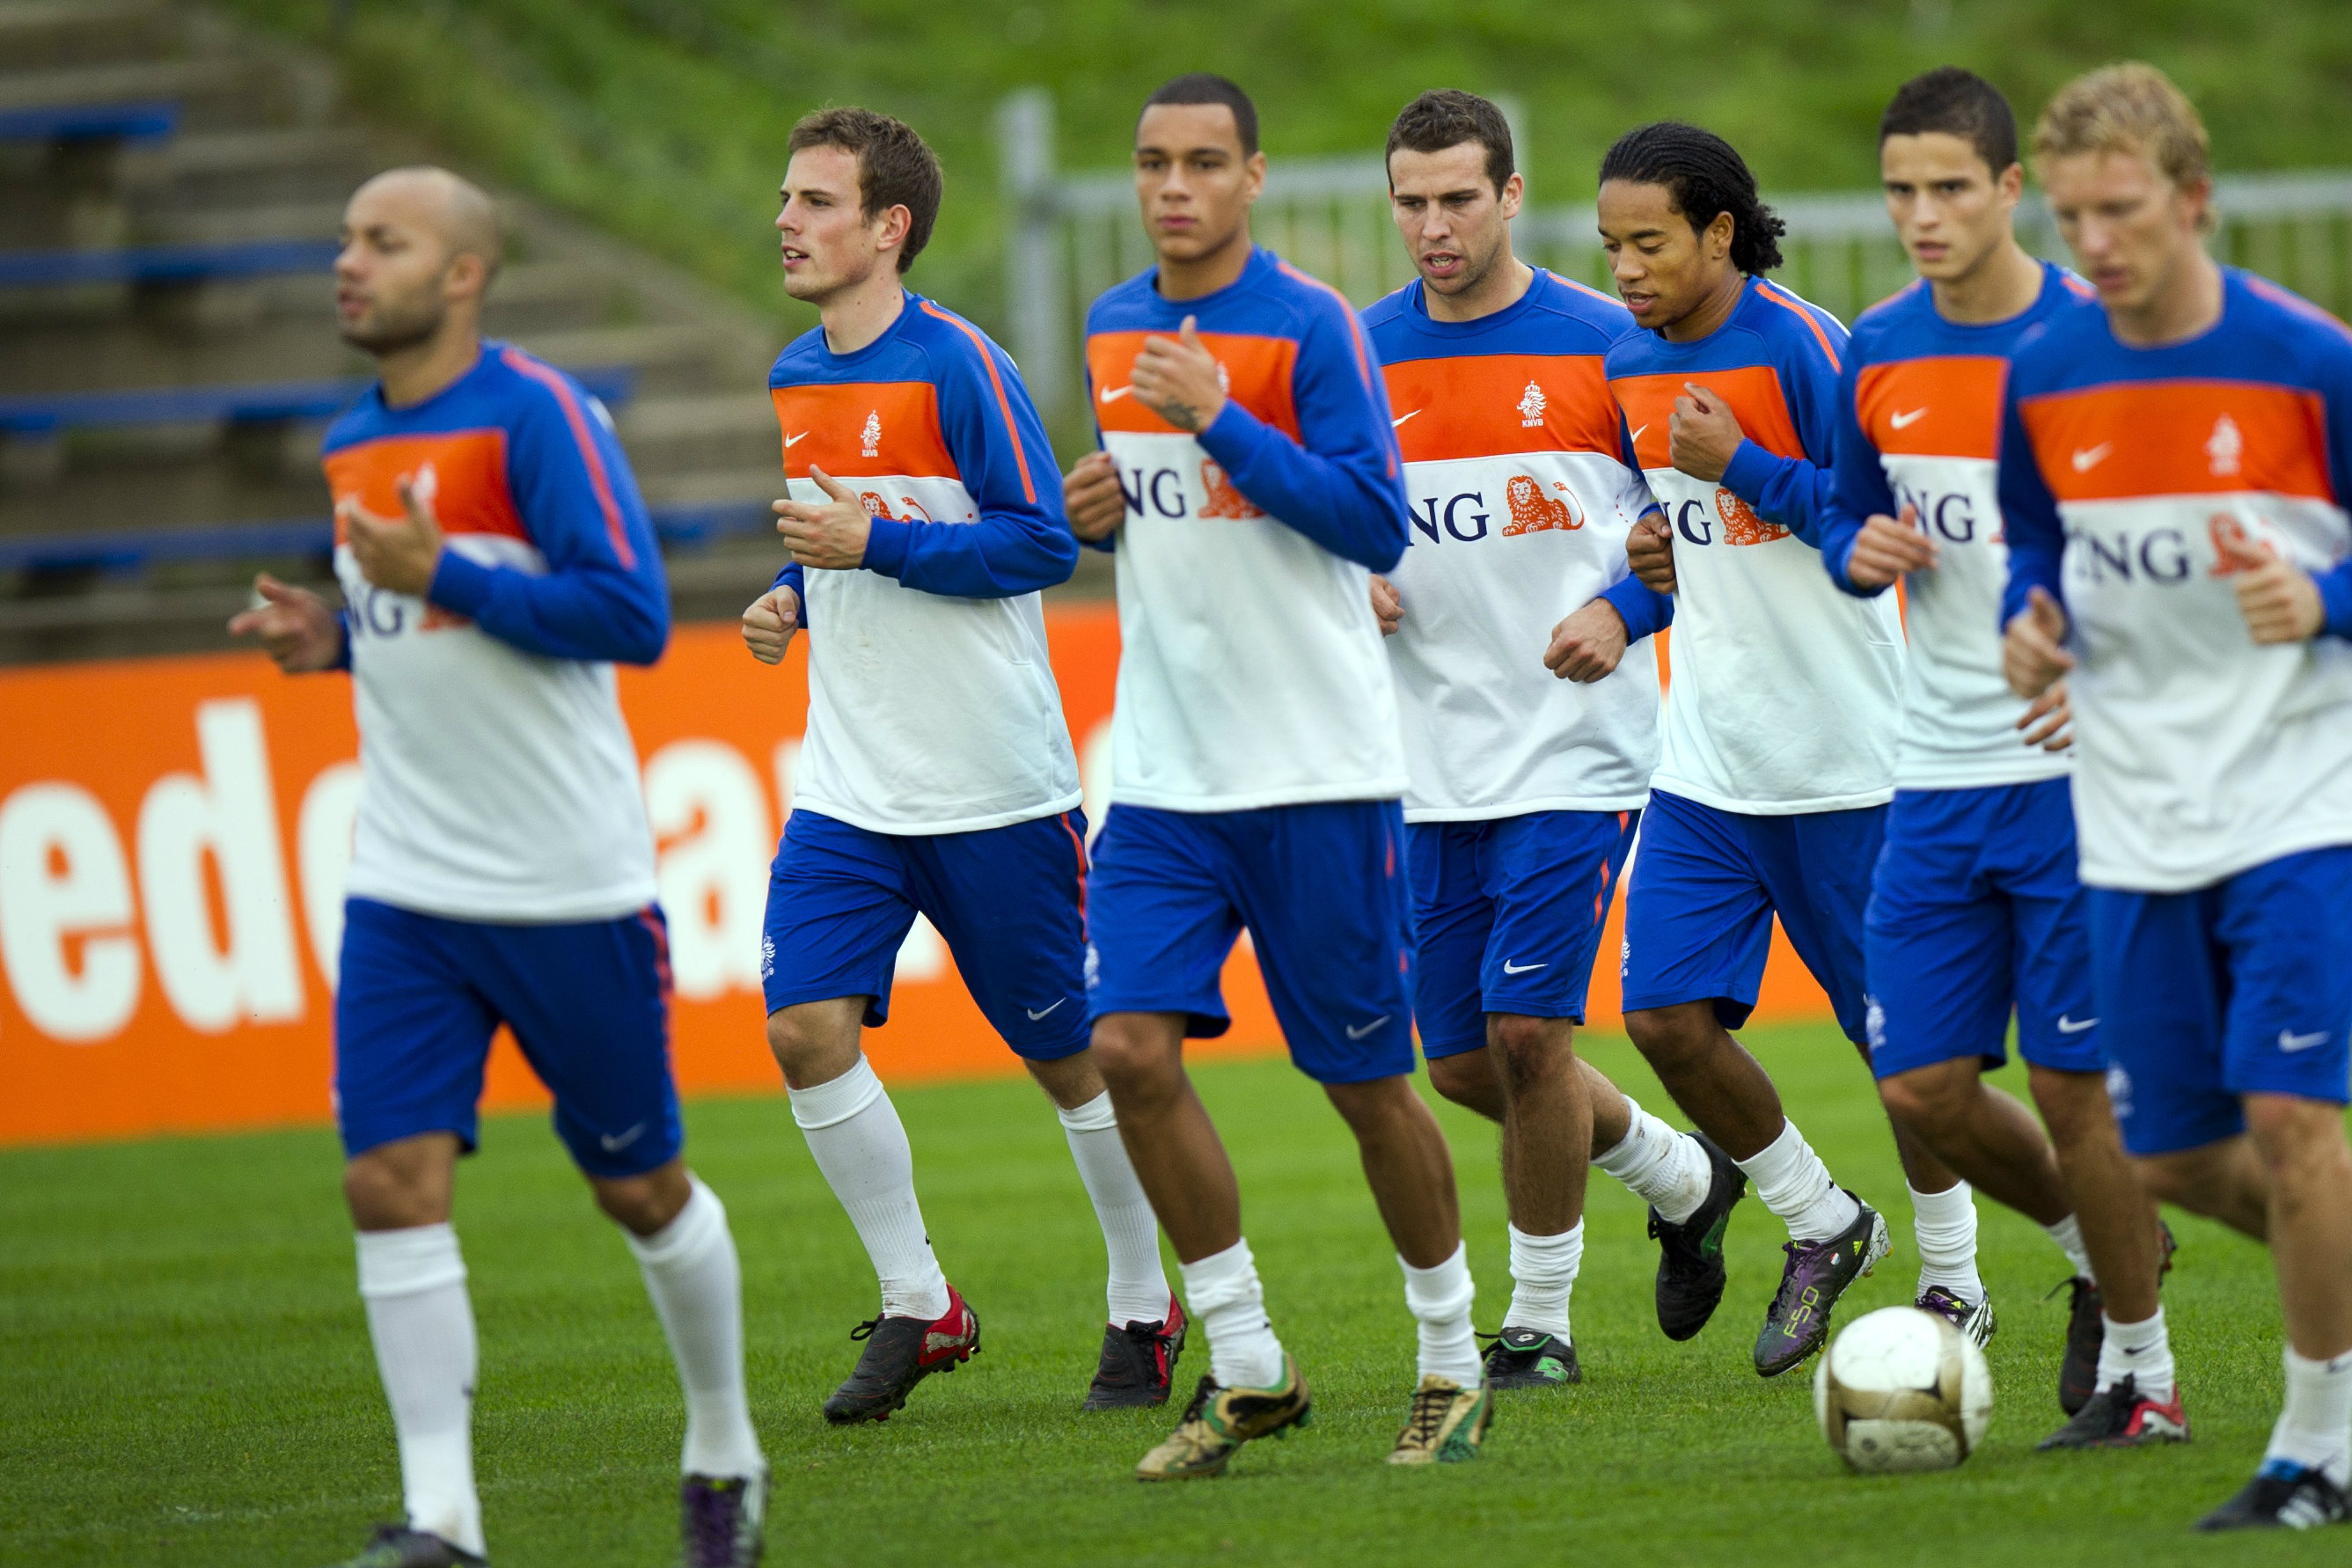 Wout Brama (second from left) training with the Dutch national team.